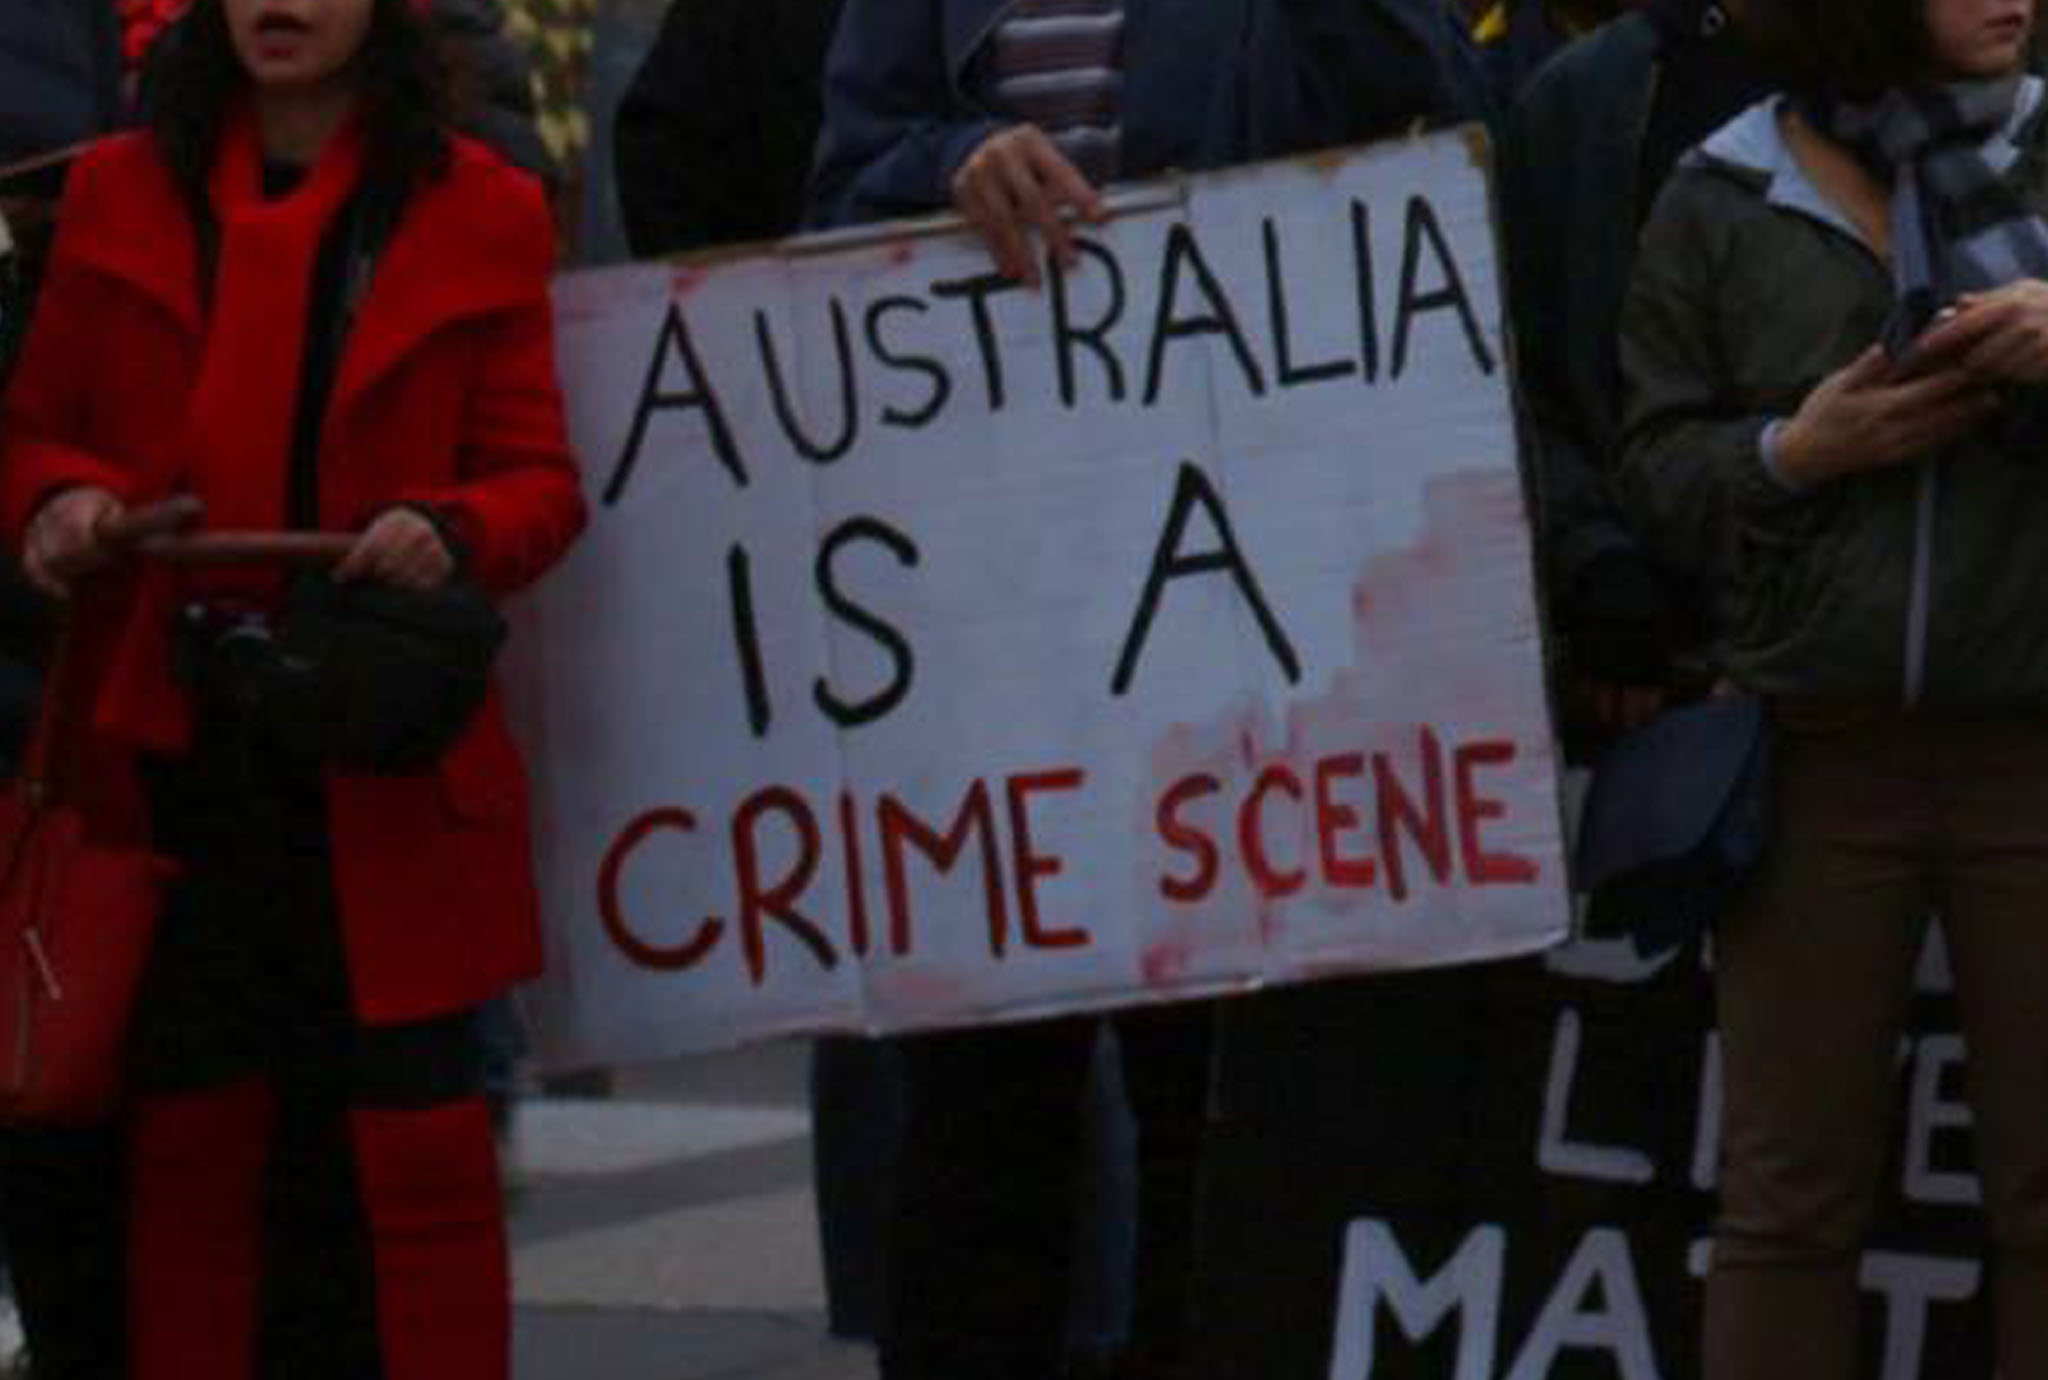 Placard being held by someone standing in a crowd of people at a protest, it reads 'Australia is a crime scene'. A woman standing to the left is wearing read and holding clap sticks.